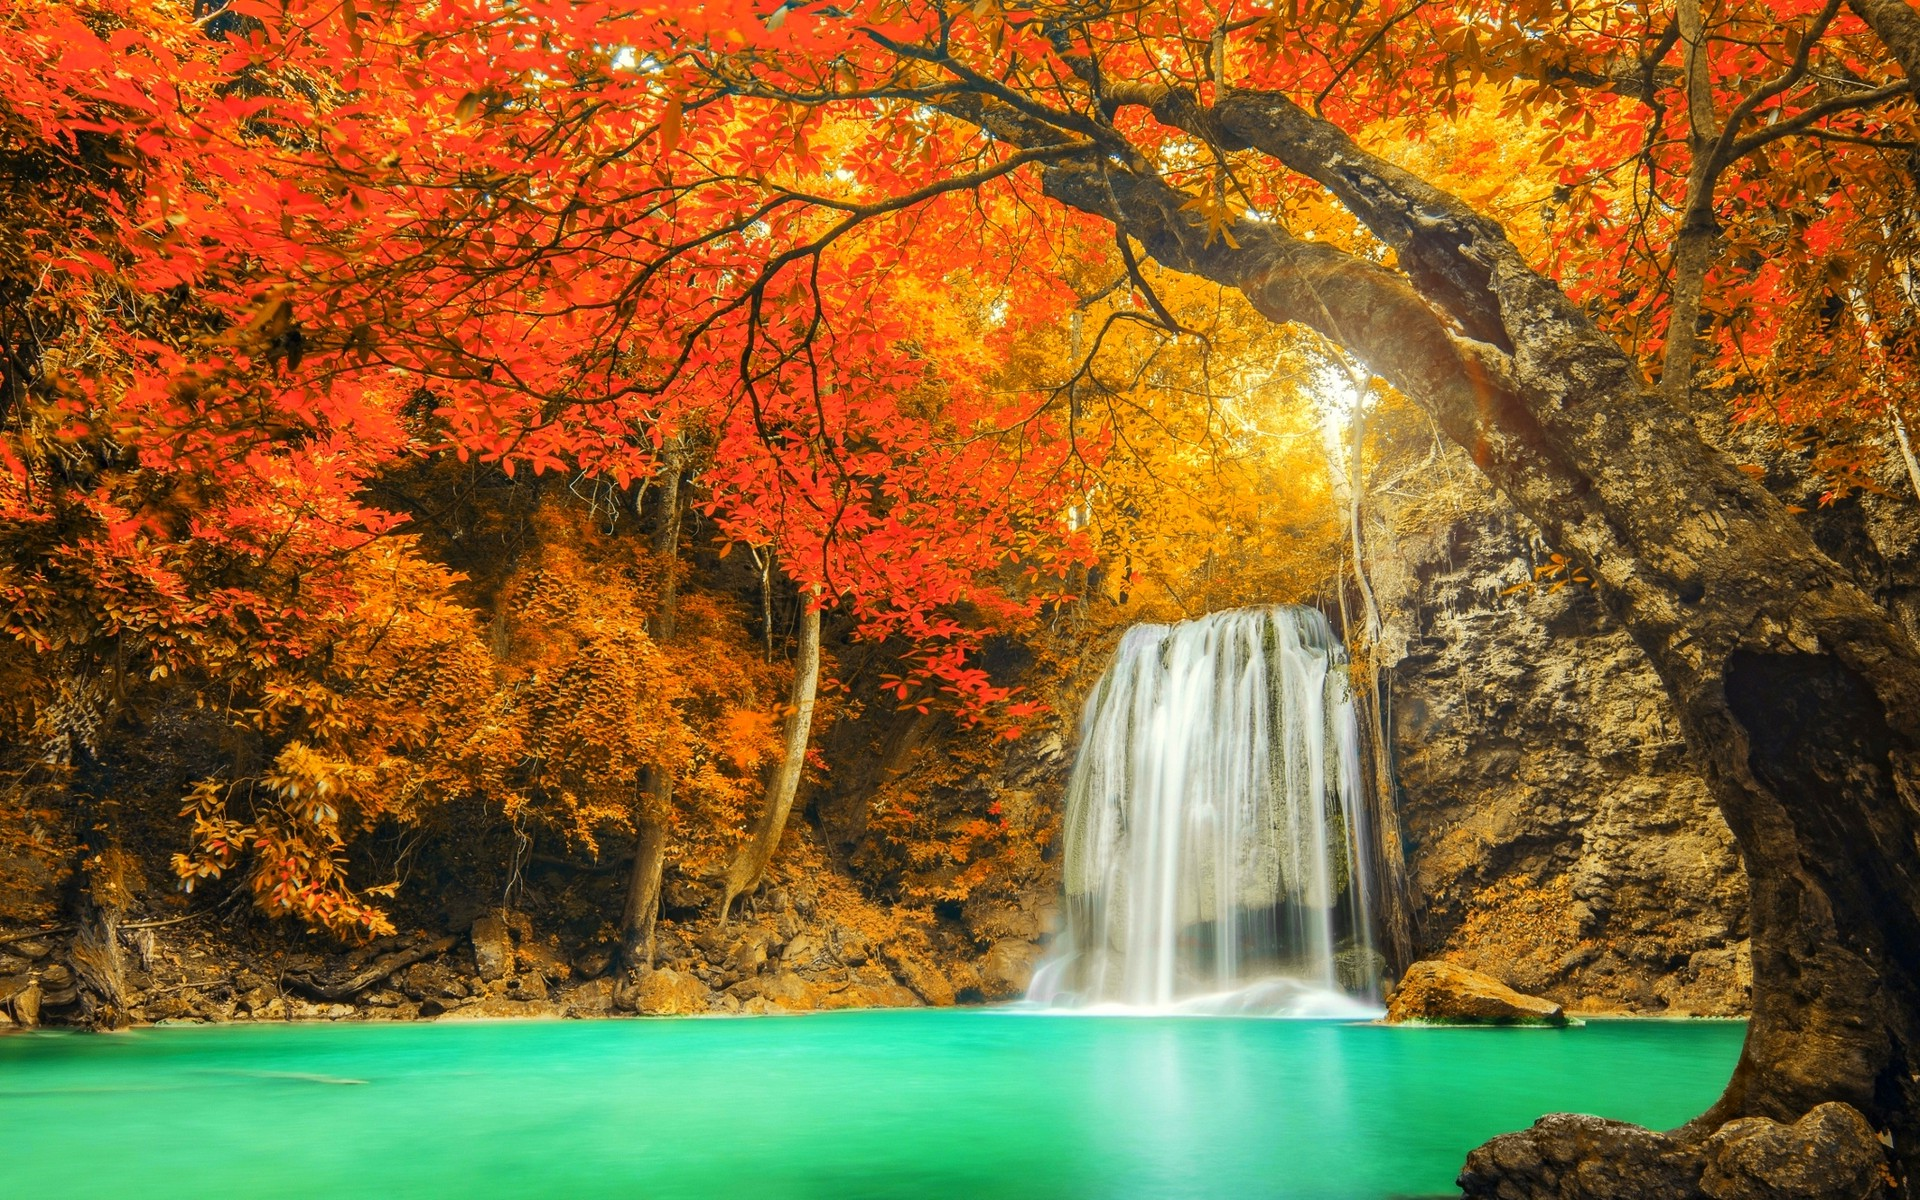 Fall Leaves Live Wallpaper Iphone Autumn Waterfall Hd Wallpaper Background Image